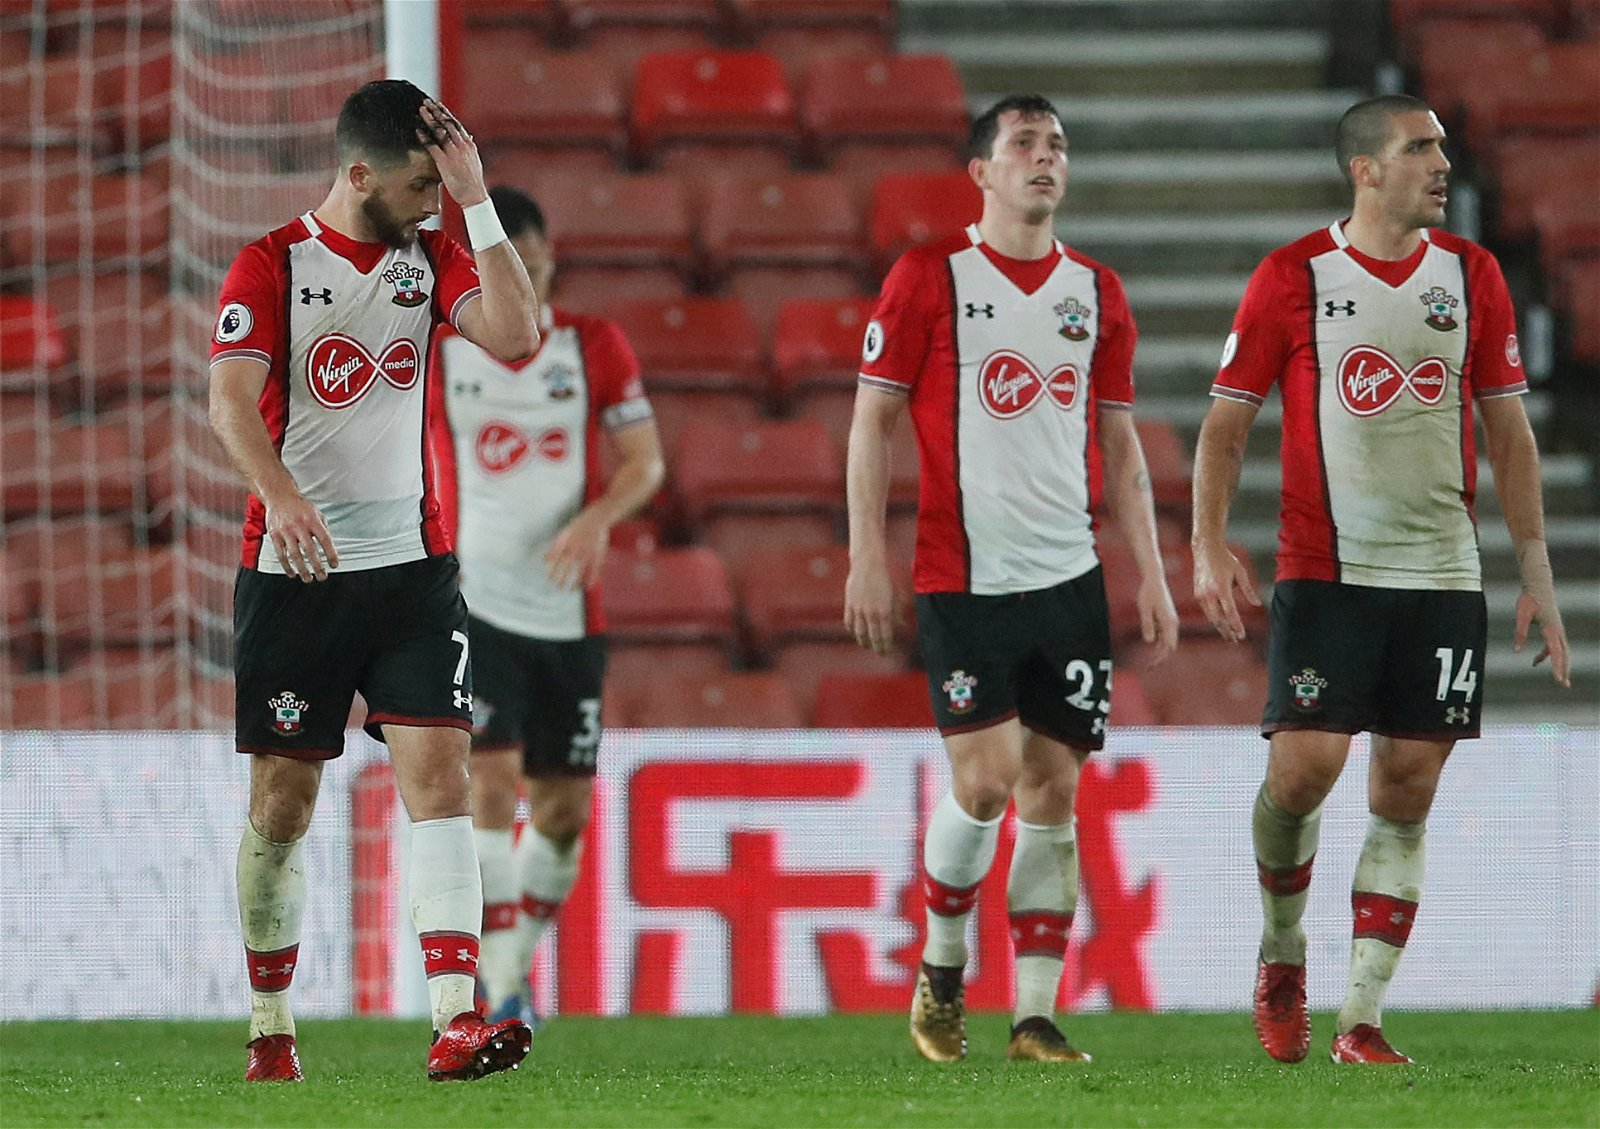 Next games crucial for Southampton who face tough end to the season